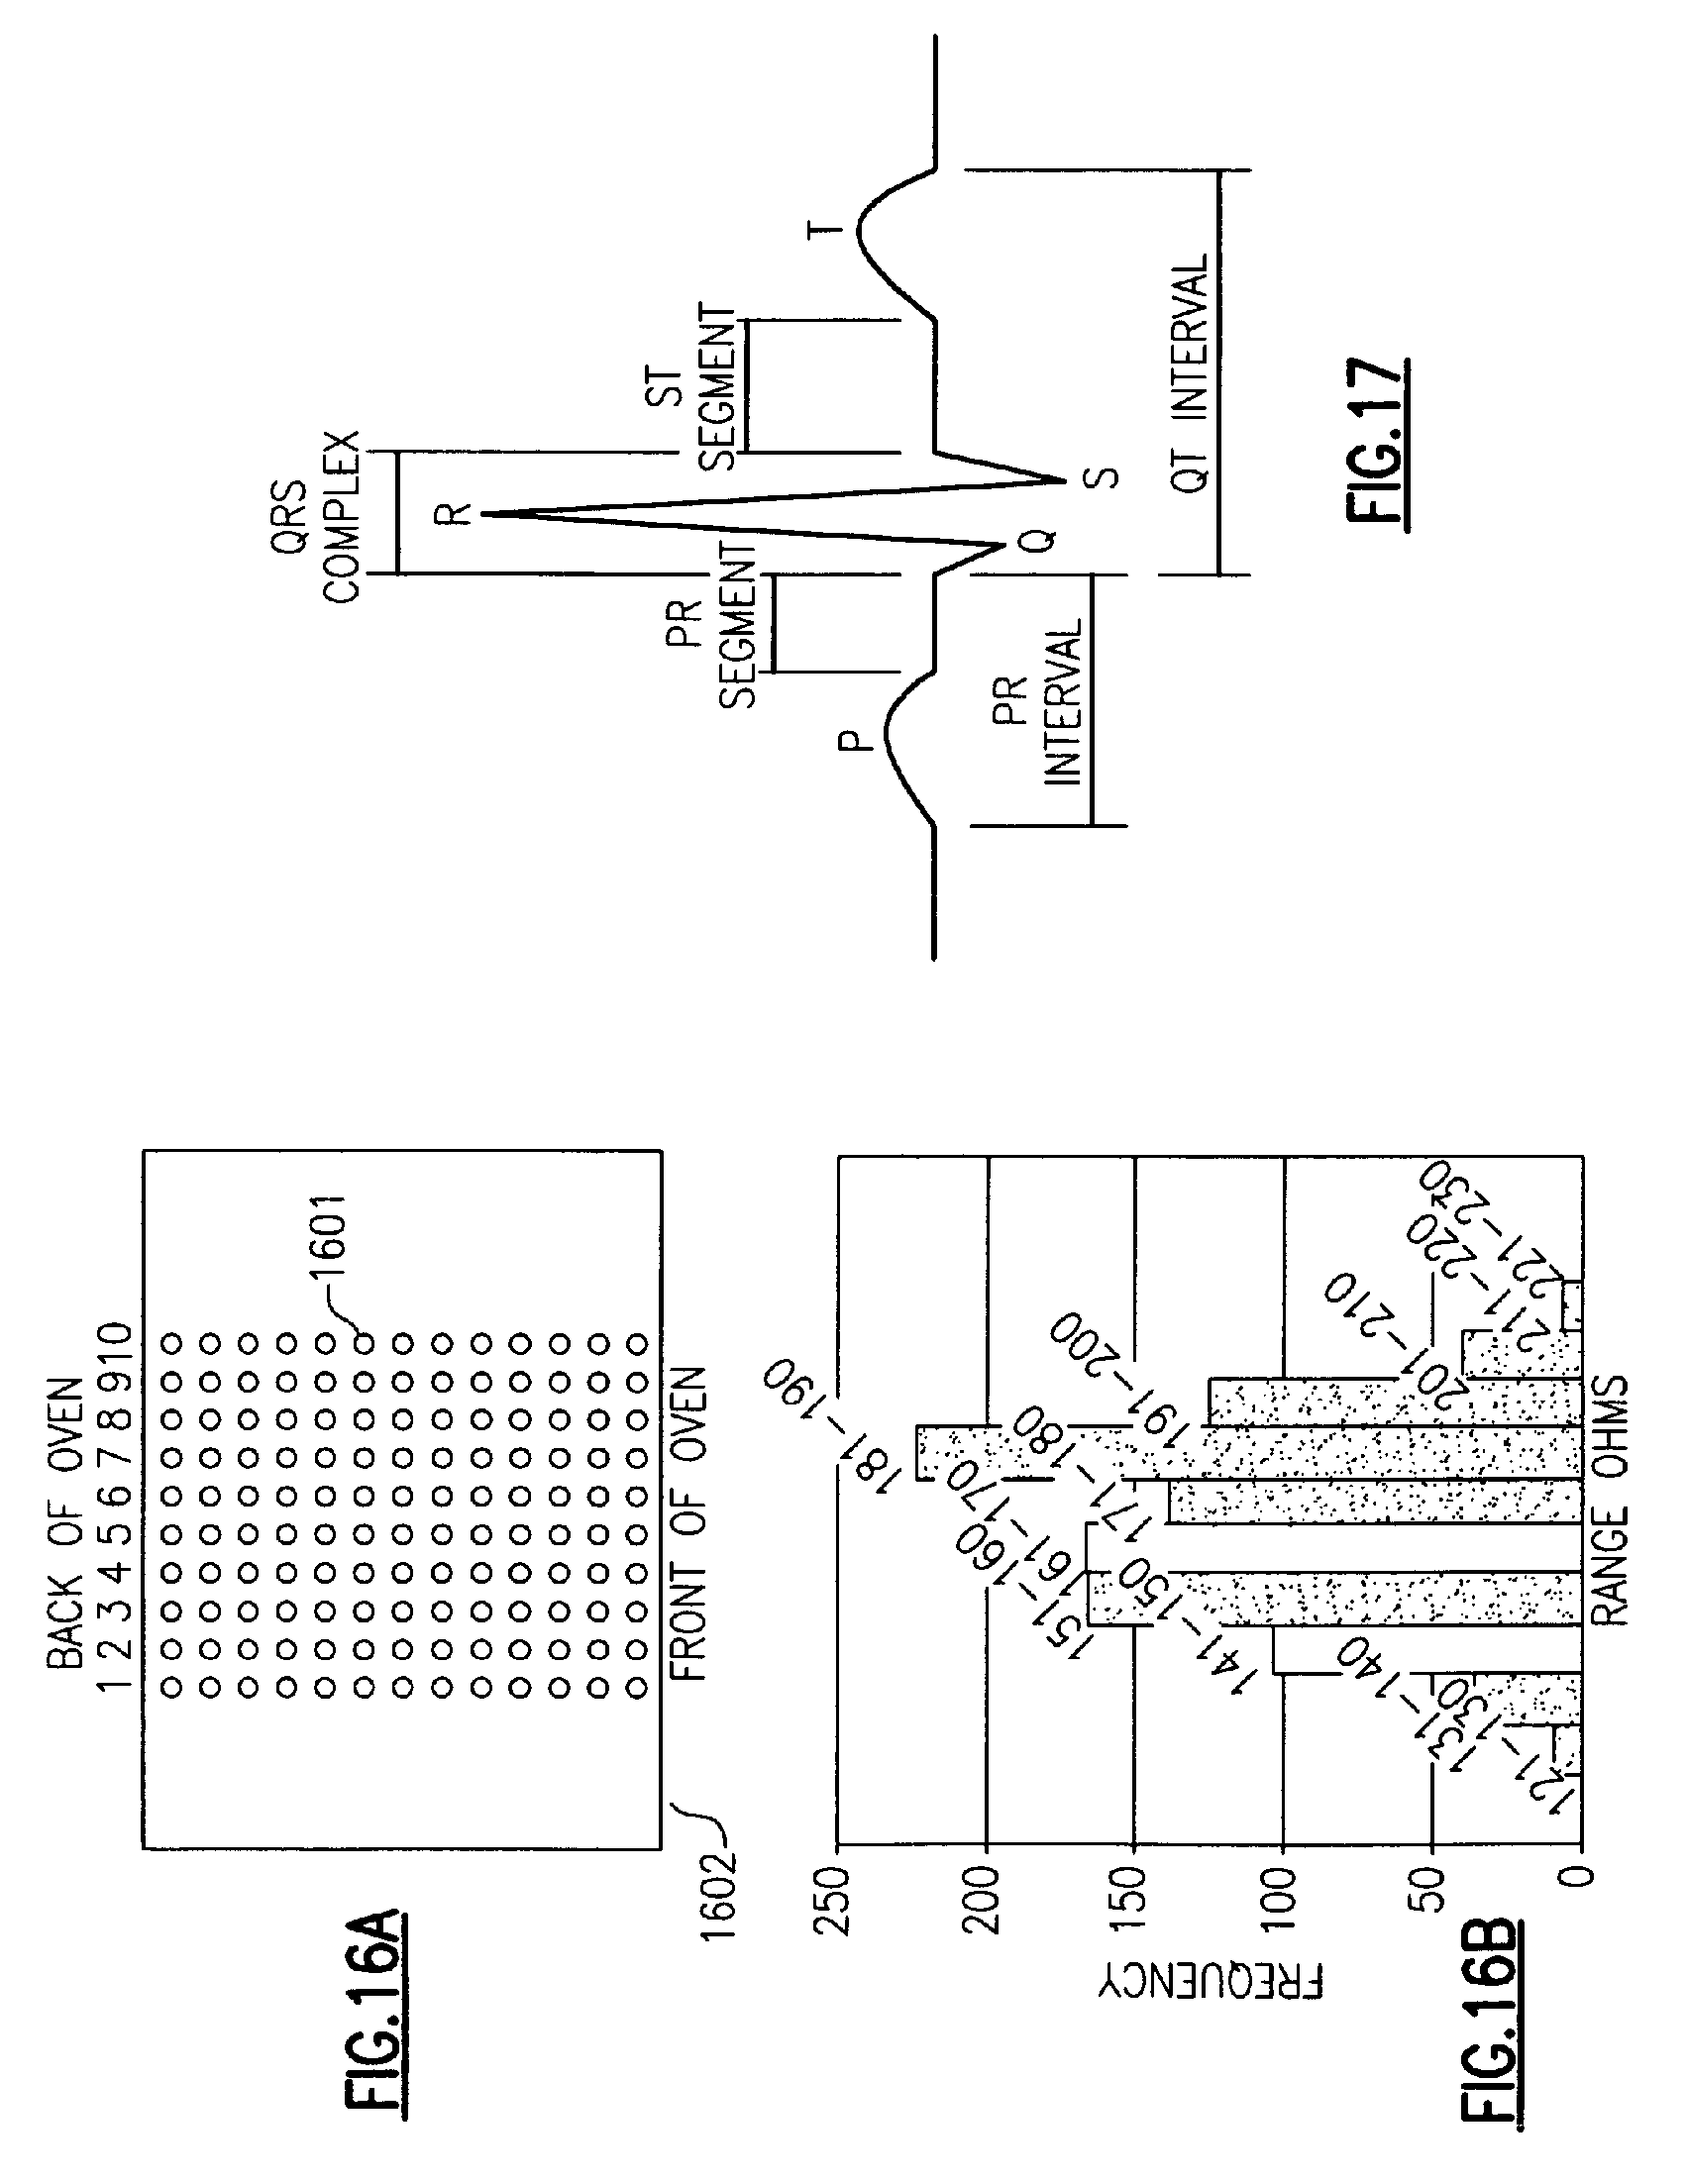 Patent Us 8965492 B2 Figure 3 Accoupling Enables This Circuit To Tolerate The Zero Source 0 Petitions